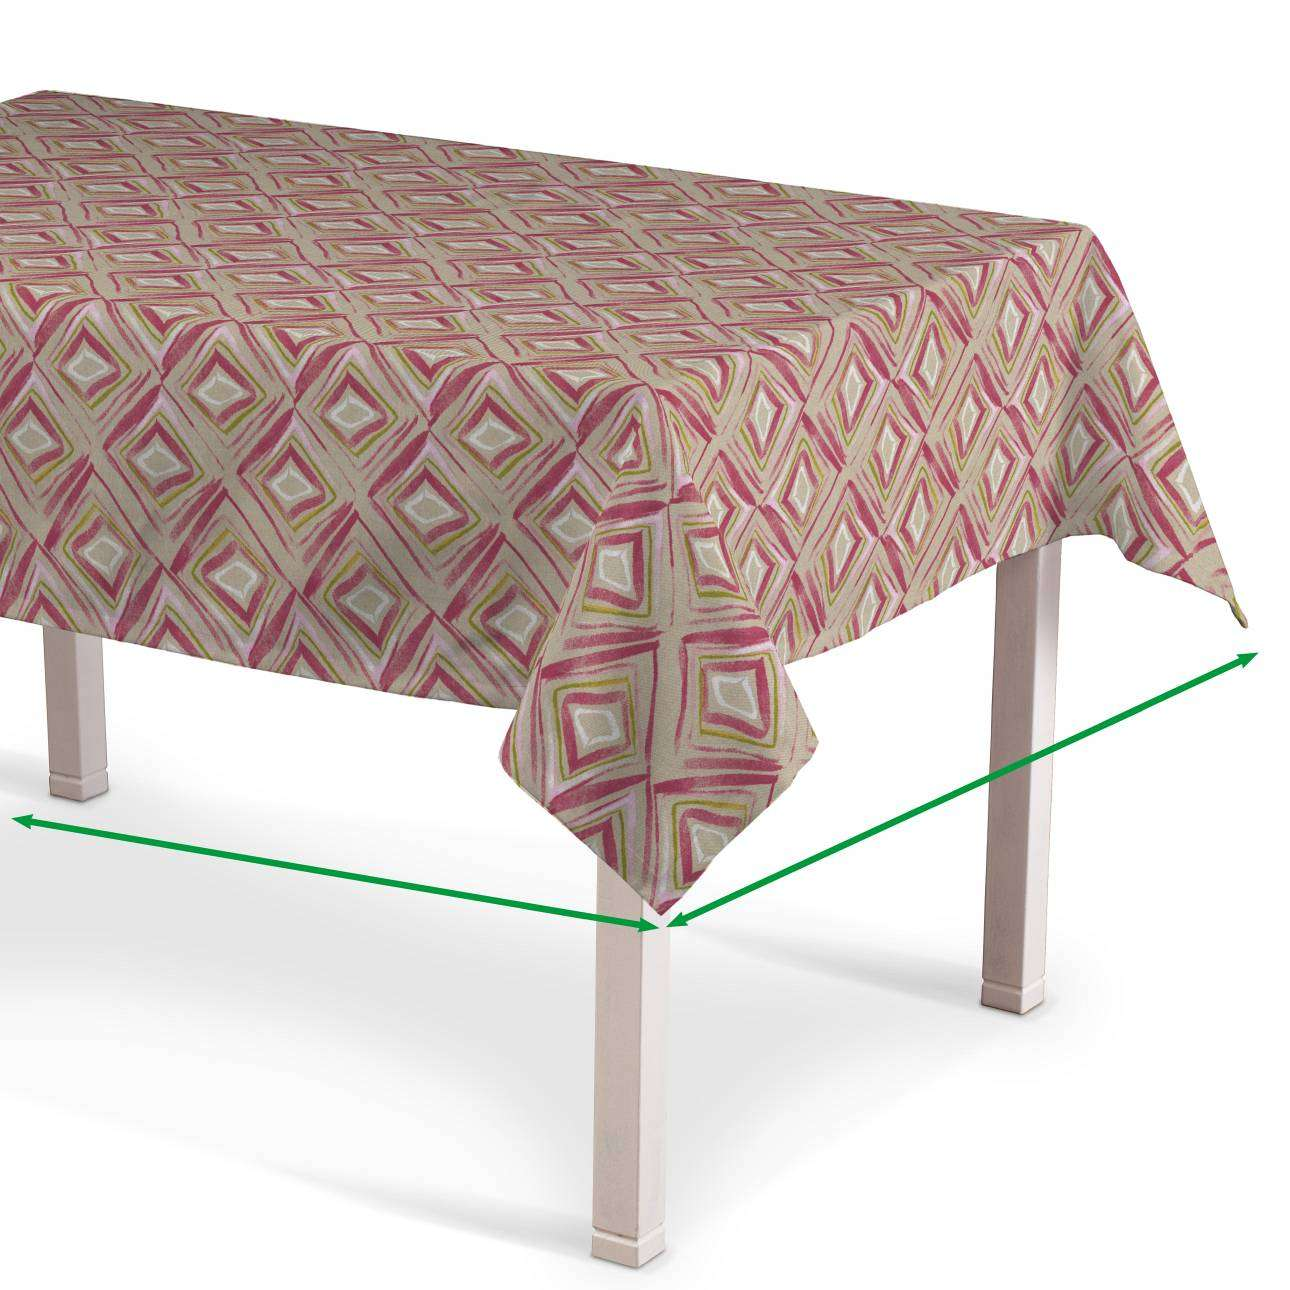 Rectangular tablecloth in collection Londres, fabric: 140-45